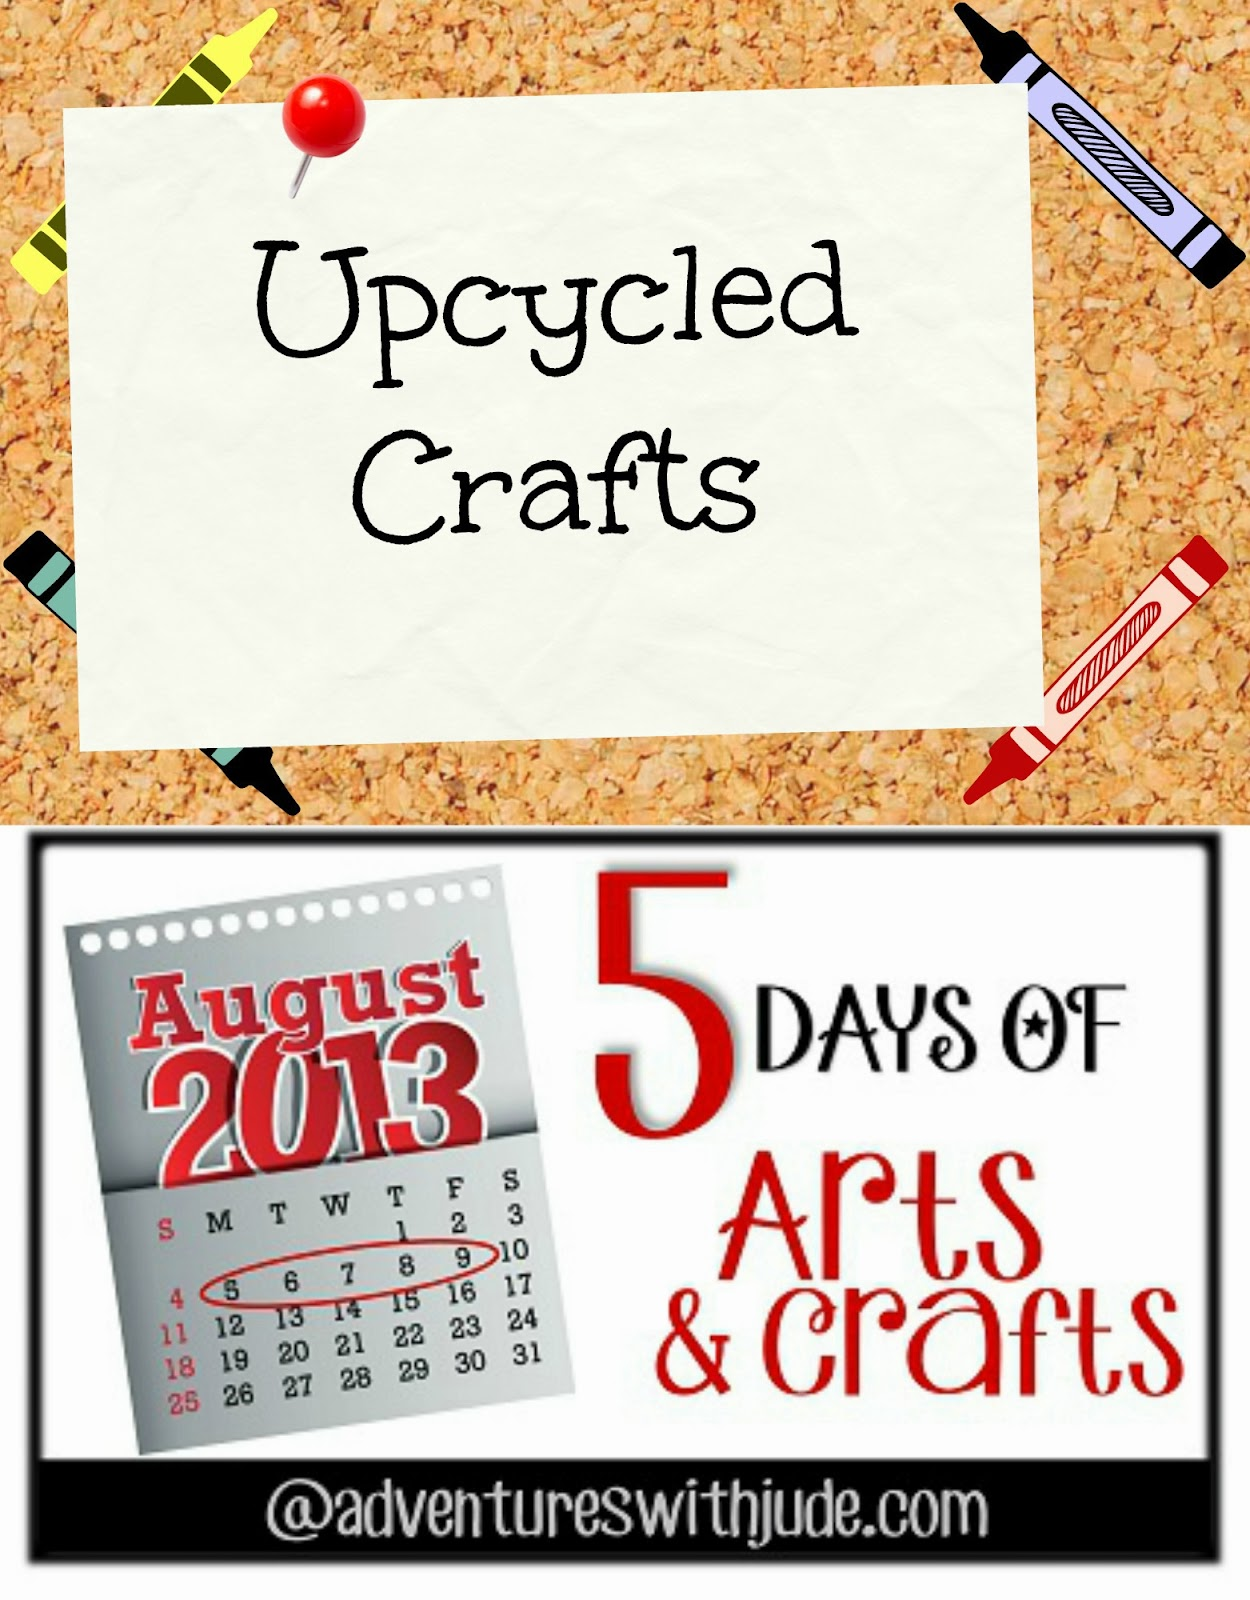 Adventures with Jude: Upcycled Crafts